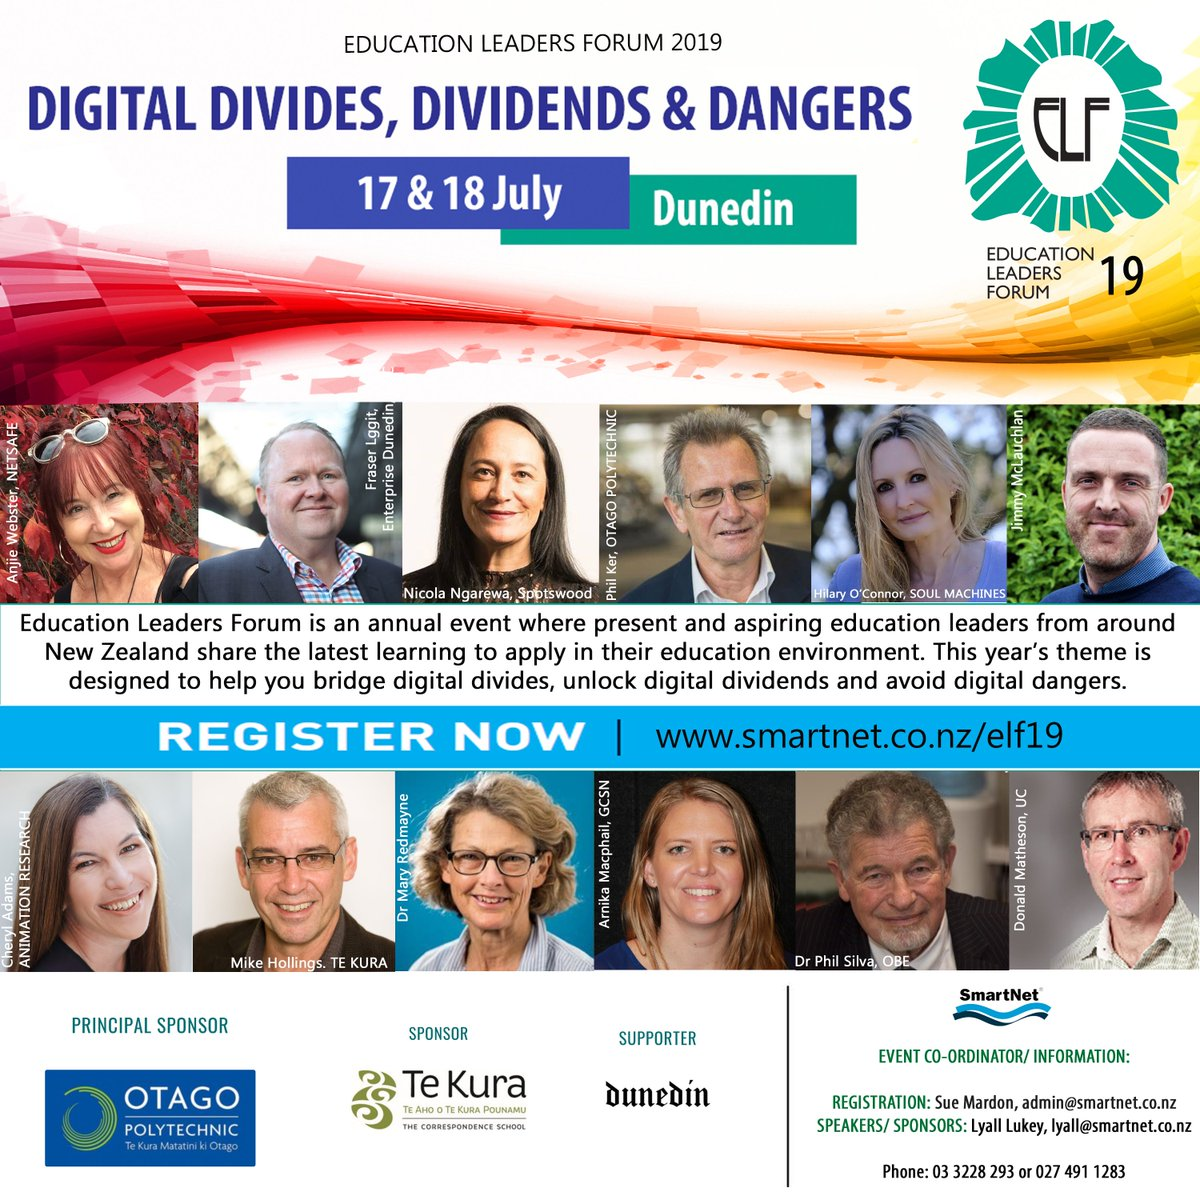 test Twitter Media - Registration for Education Leaders Forum 2019: Digital, Divides, Dividends & Dangers, 17 & 18 July, Dunedin is now open! https://t.co/KUVPZ0lSxY - very early bird rates available until 10 May 👍 https://t.co/0w6HGYFzWY